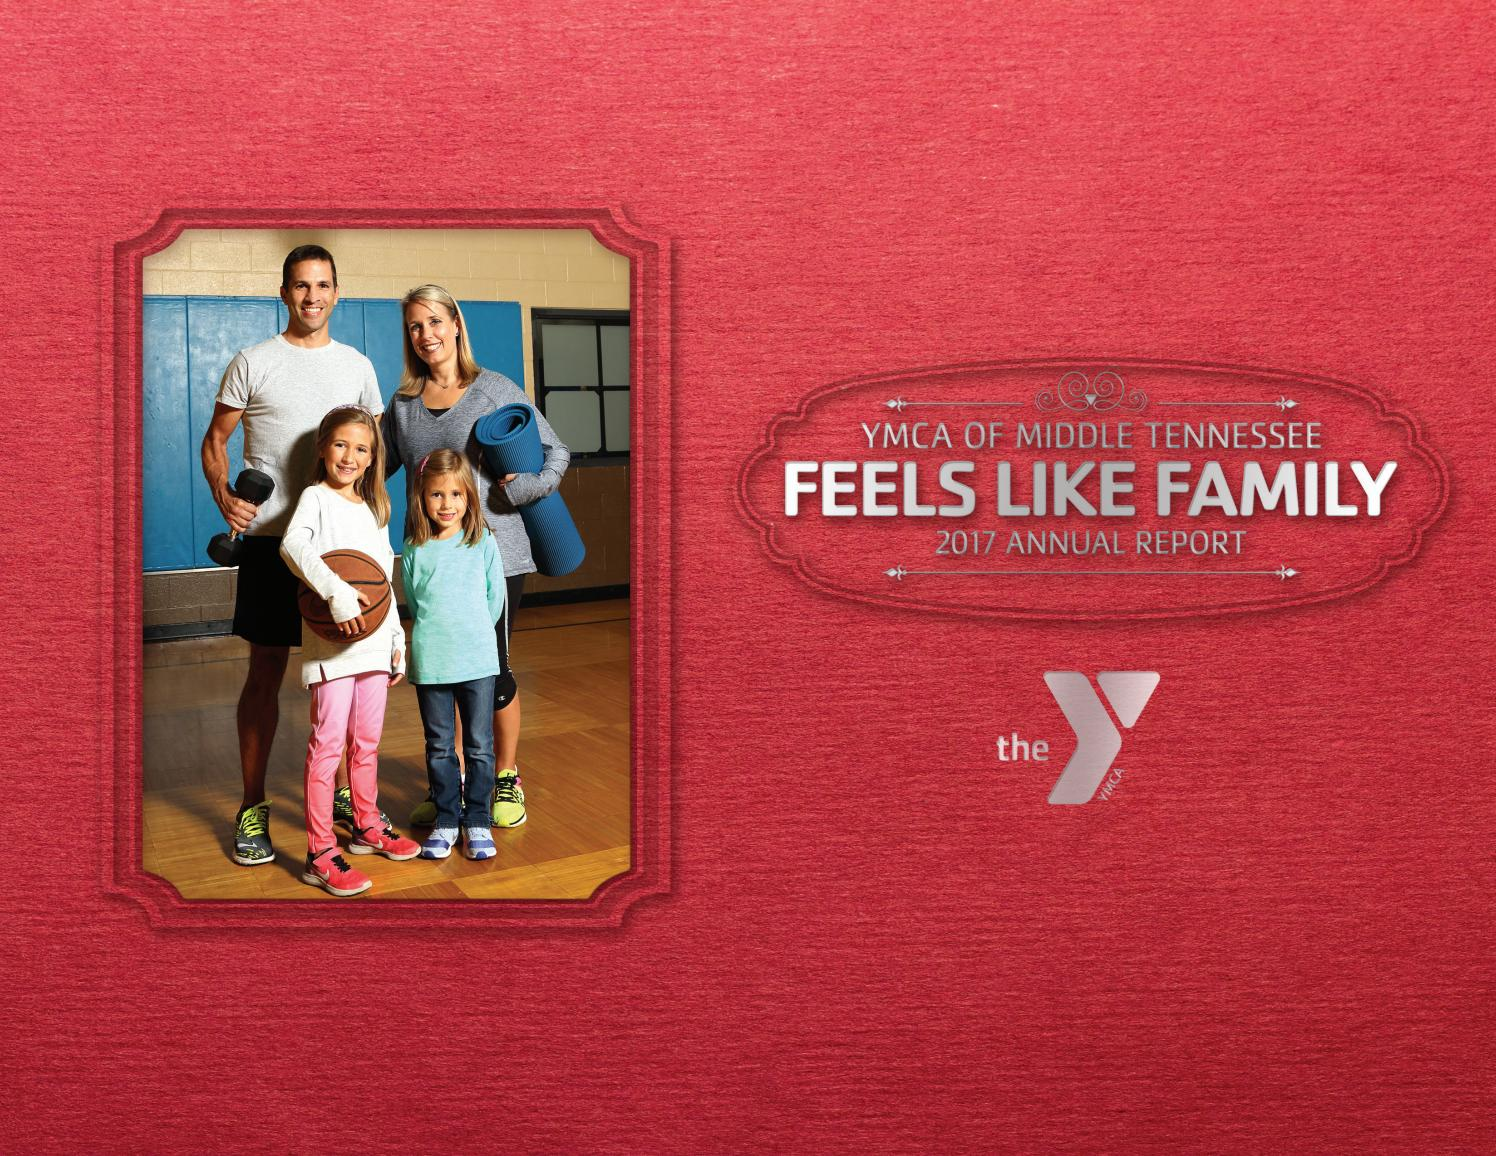 YMCA OF MIDDLE TENNESSEE 2017 ANNUAL REPORT by YMCA of